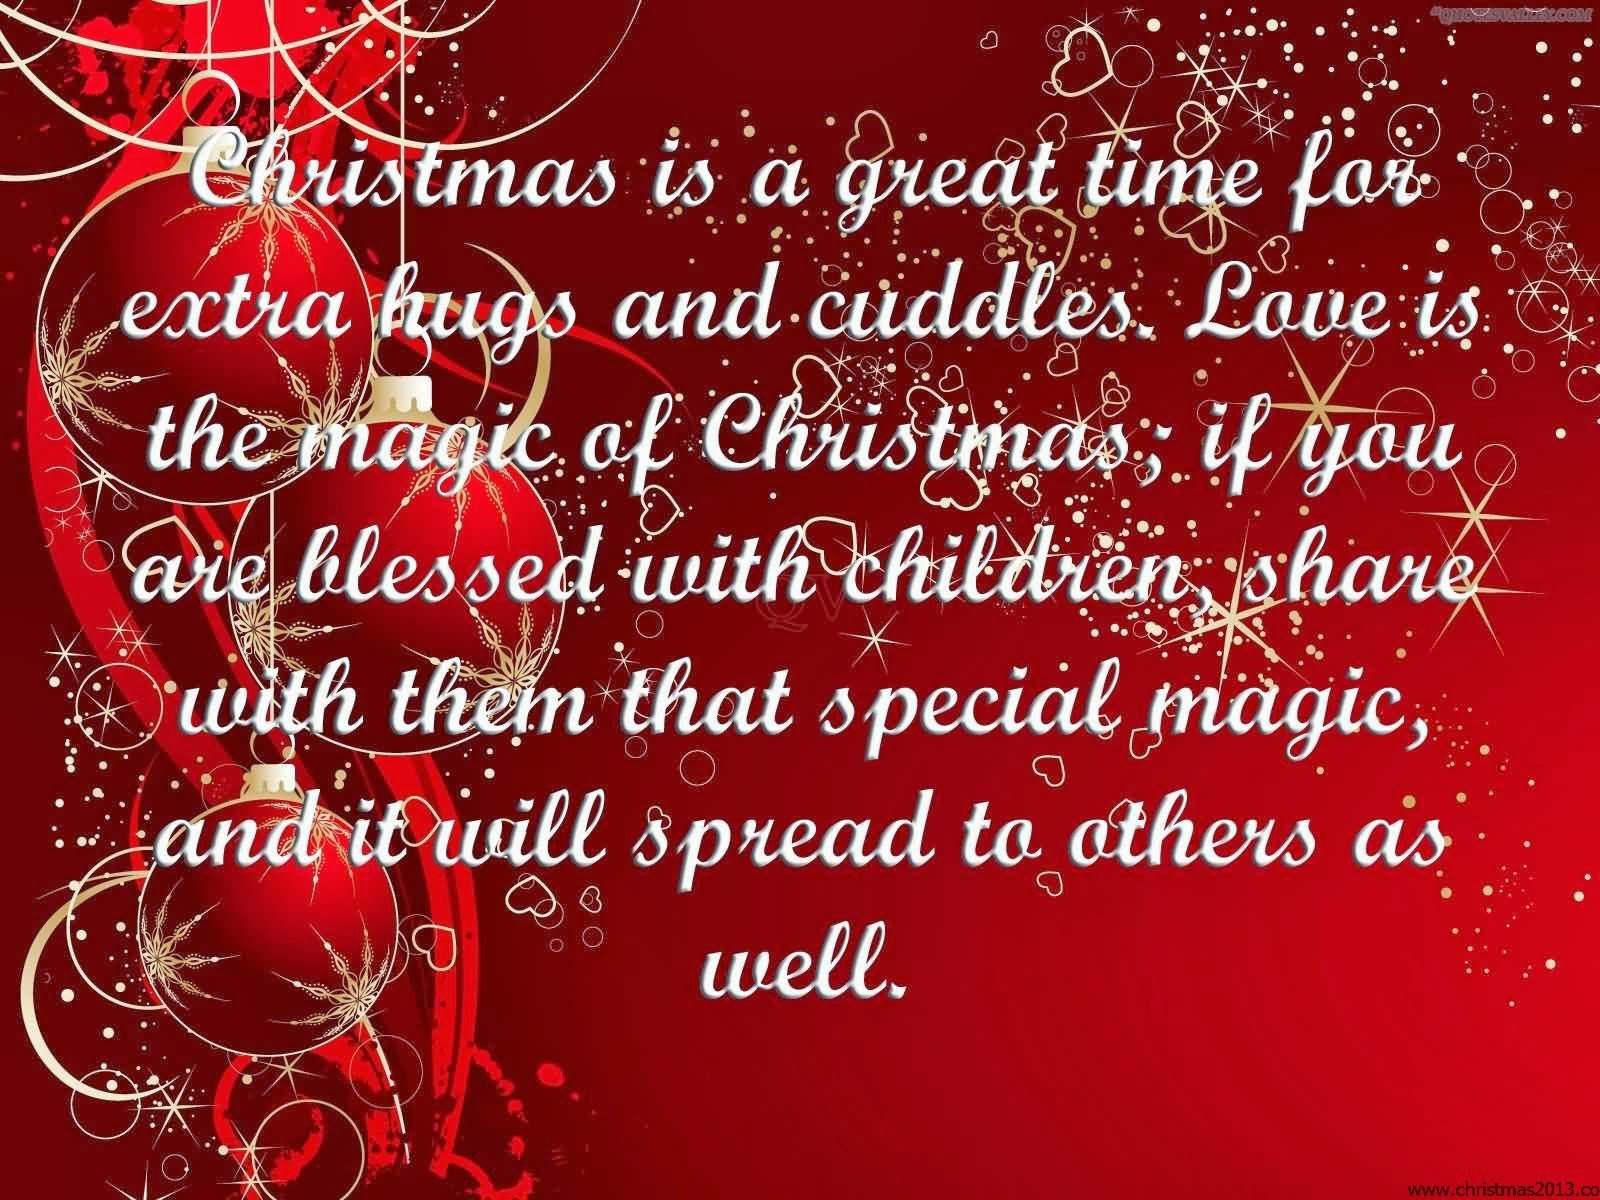 Christmas List Quotes Quotesgram: Christmas Family Time Quotes. QuotesGram